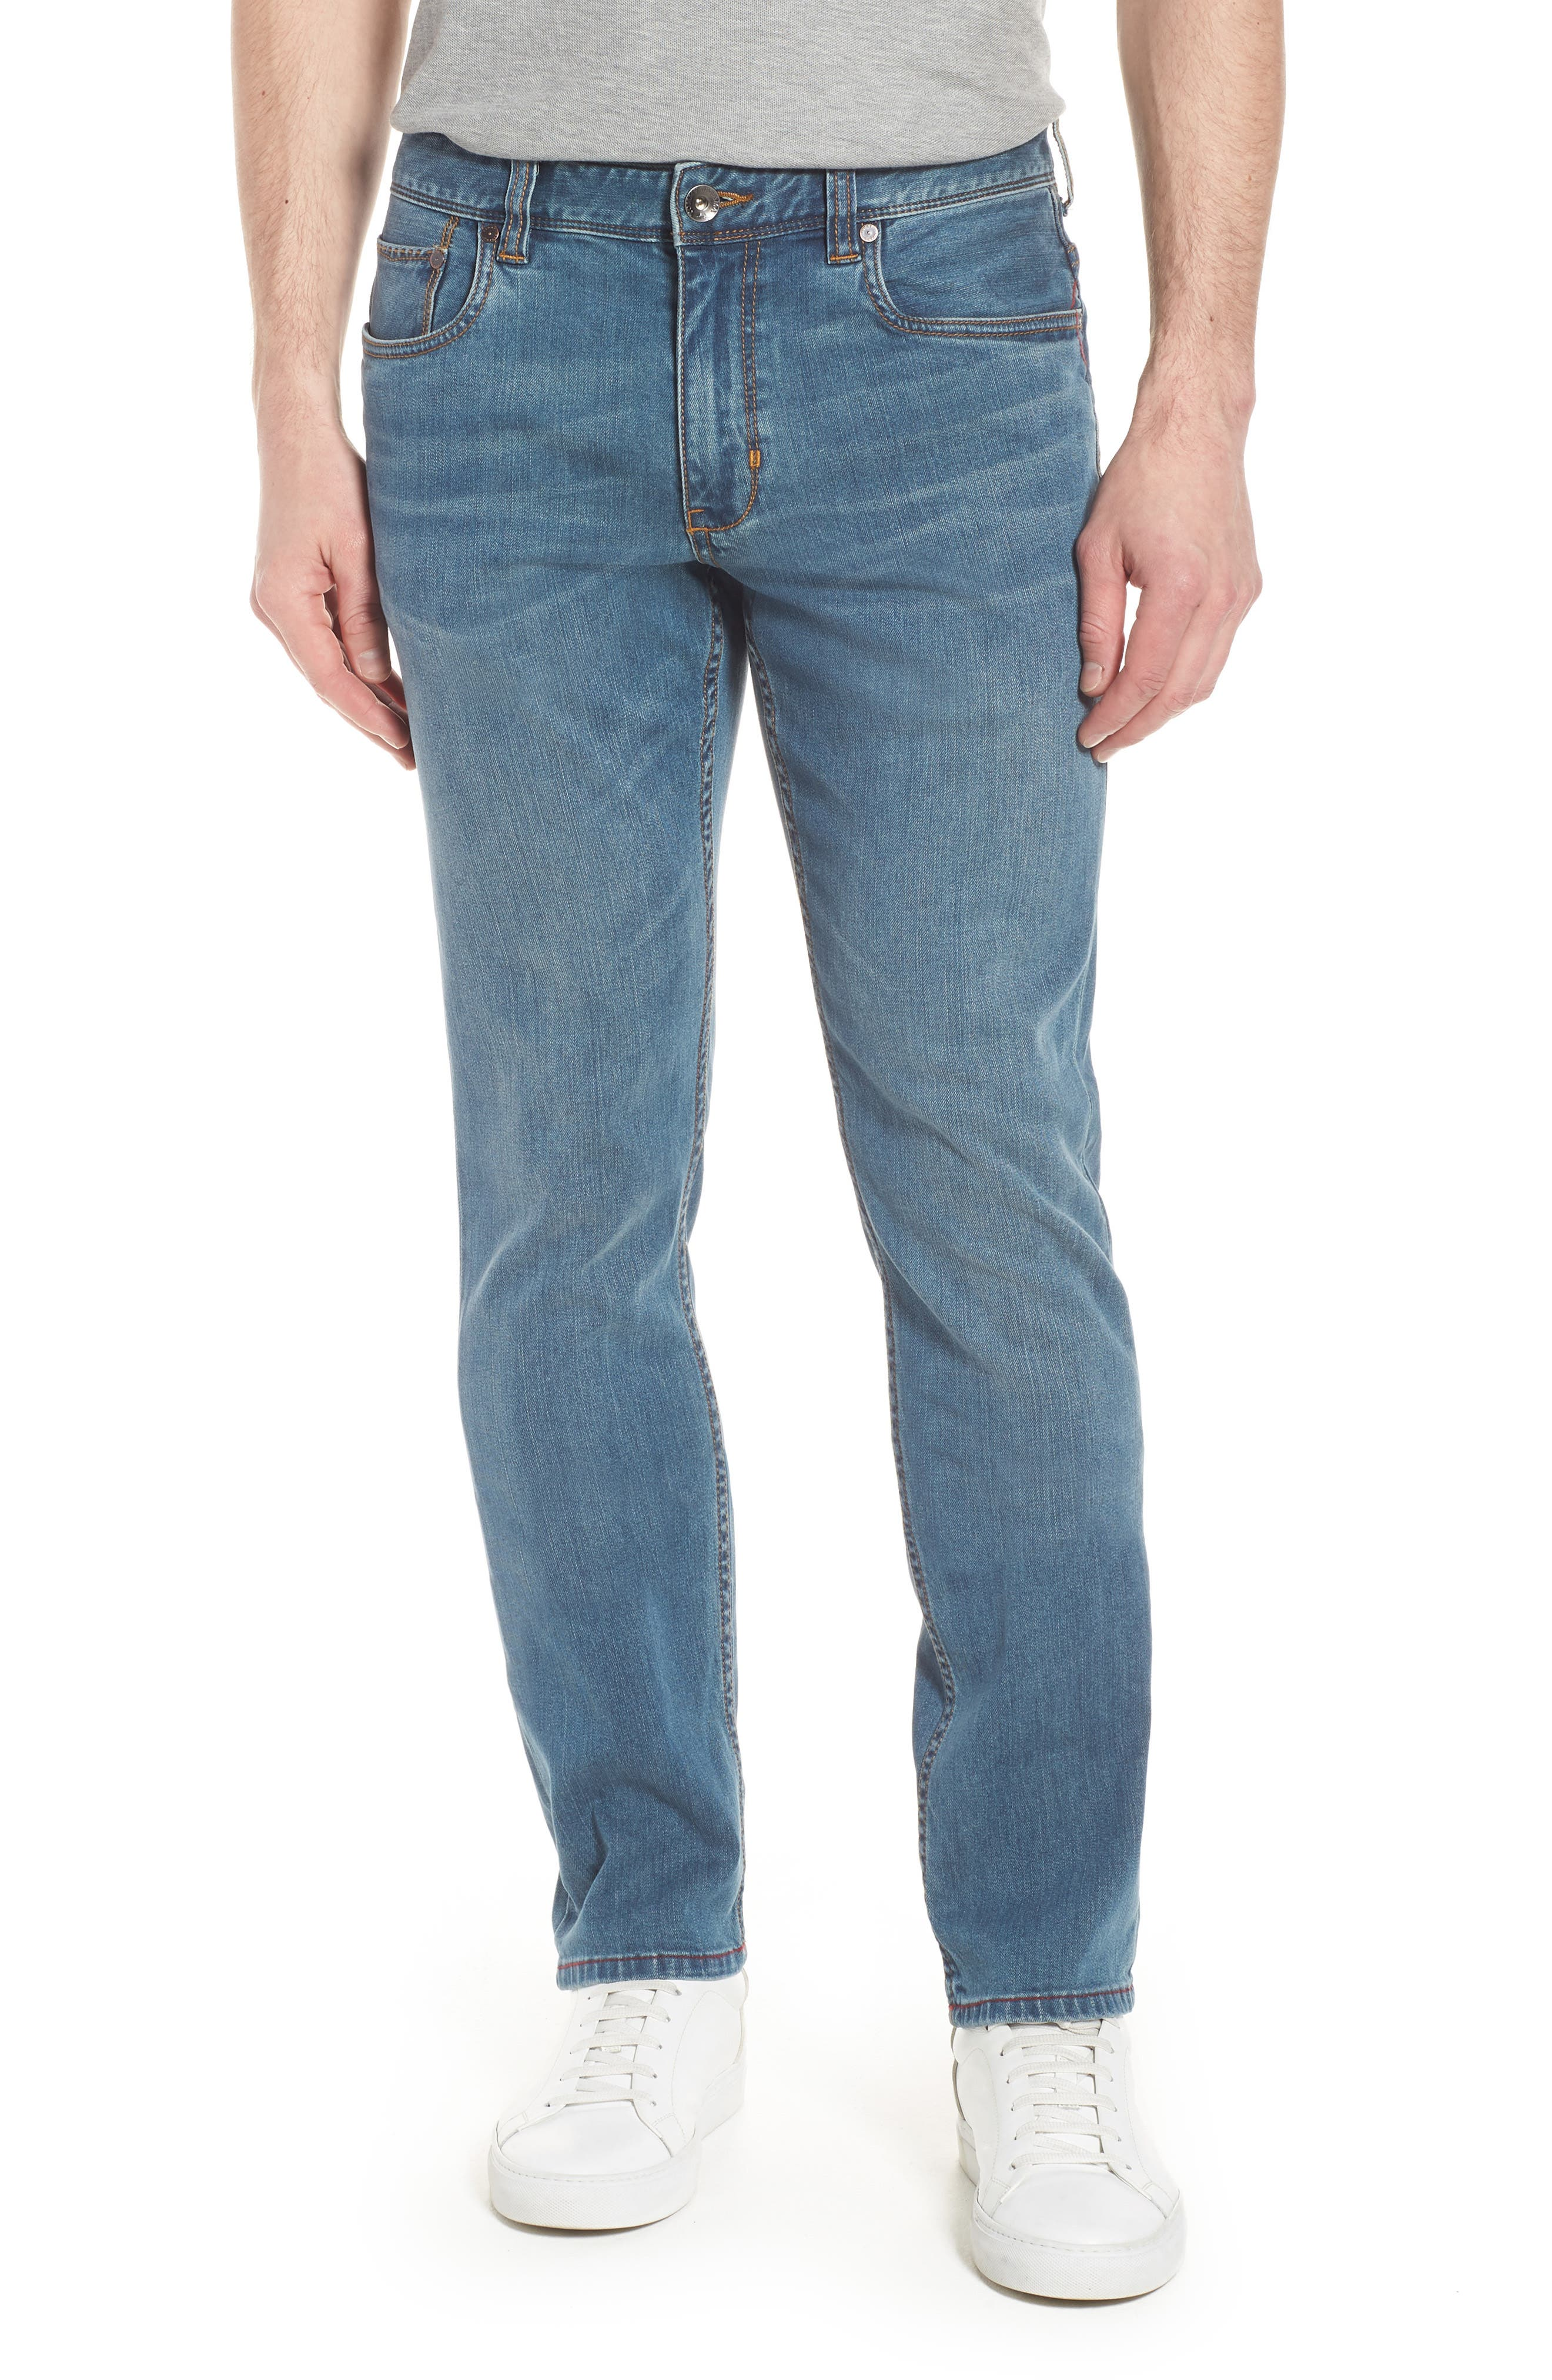 Vintage Fit Jeans,                             Main thumbnail 1, color,                             VINTAGE WASH